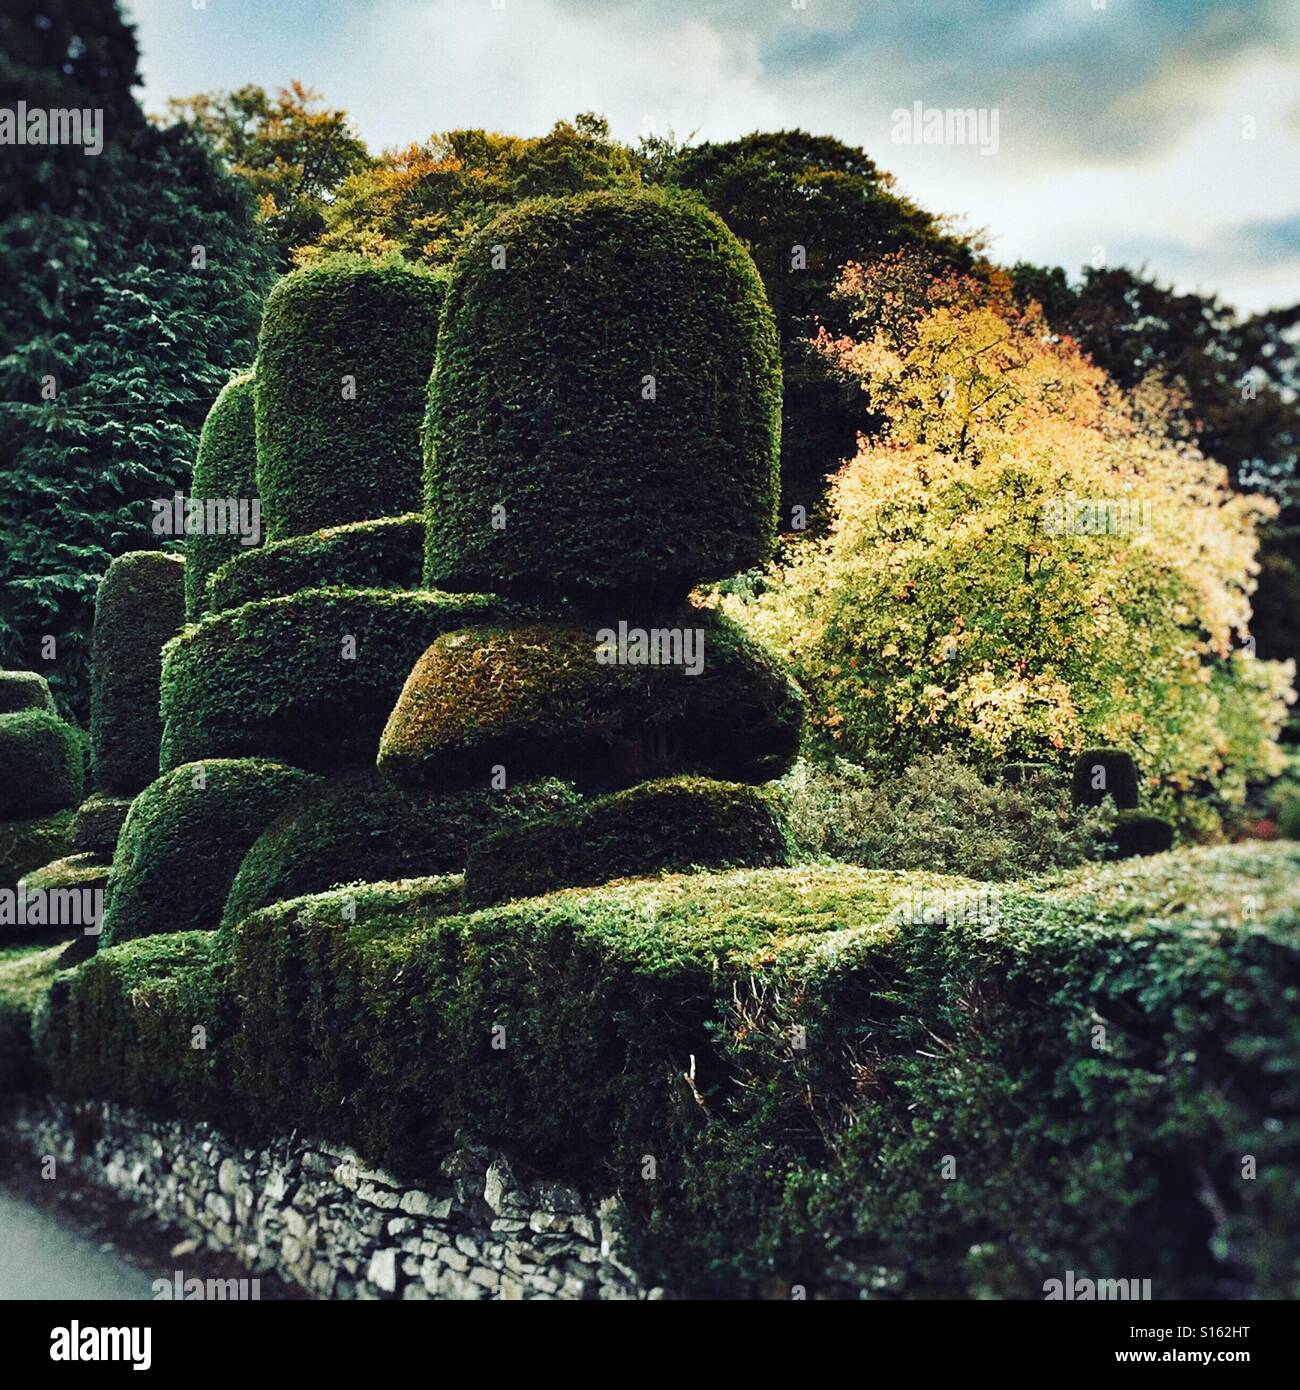 Topiary hedge in garden in Cumbria Stock Photo